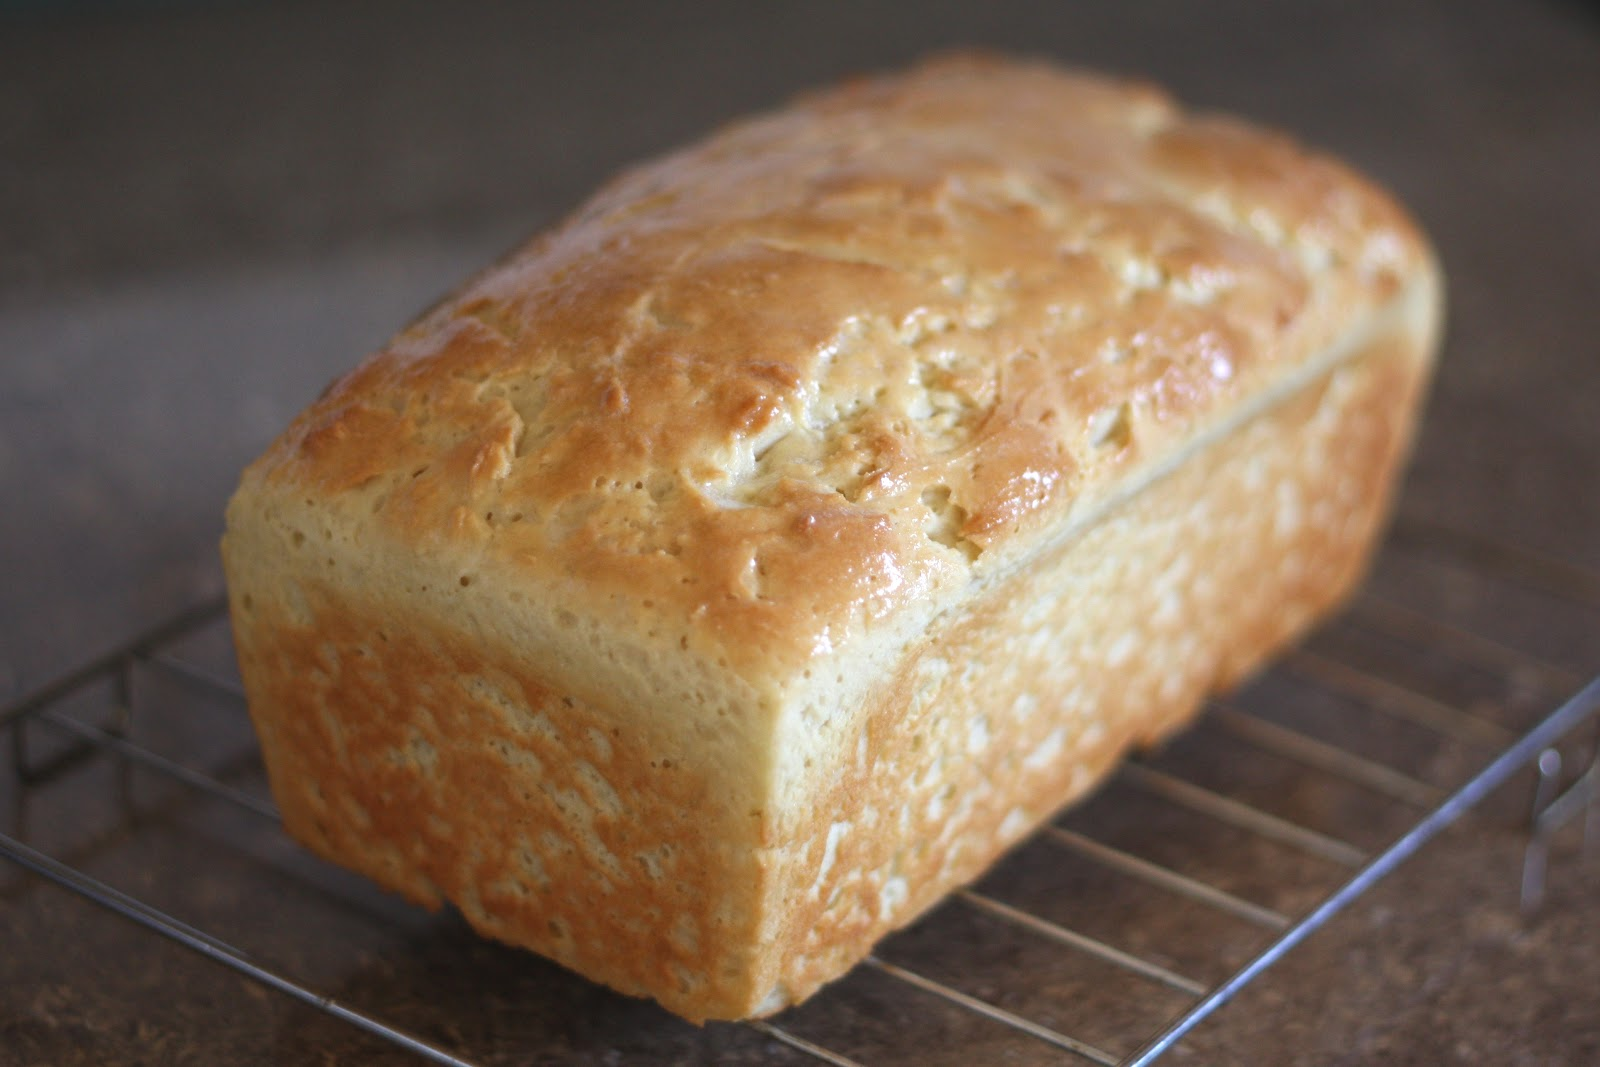 Tips on How to Make Gluten-Free Sandwich Bread (And a Recipe!) | One ...